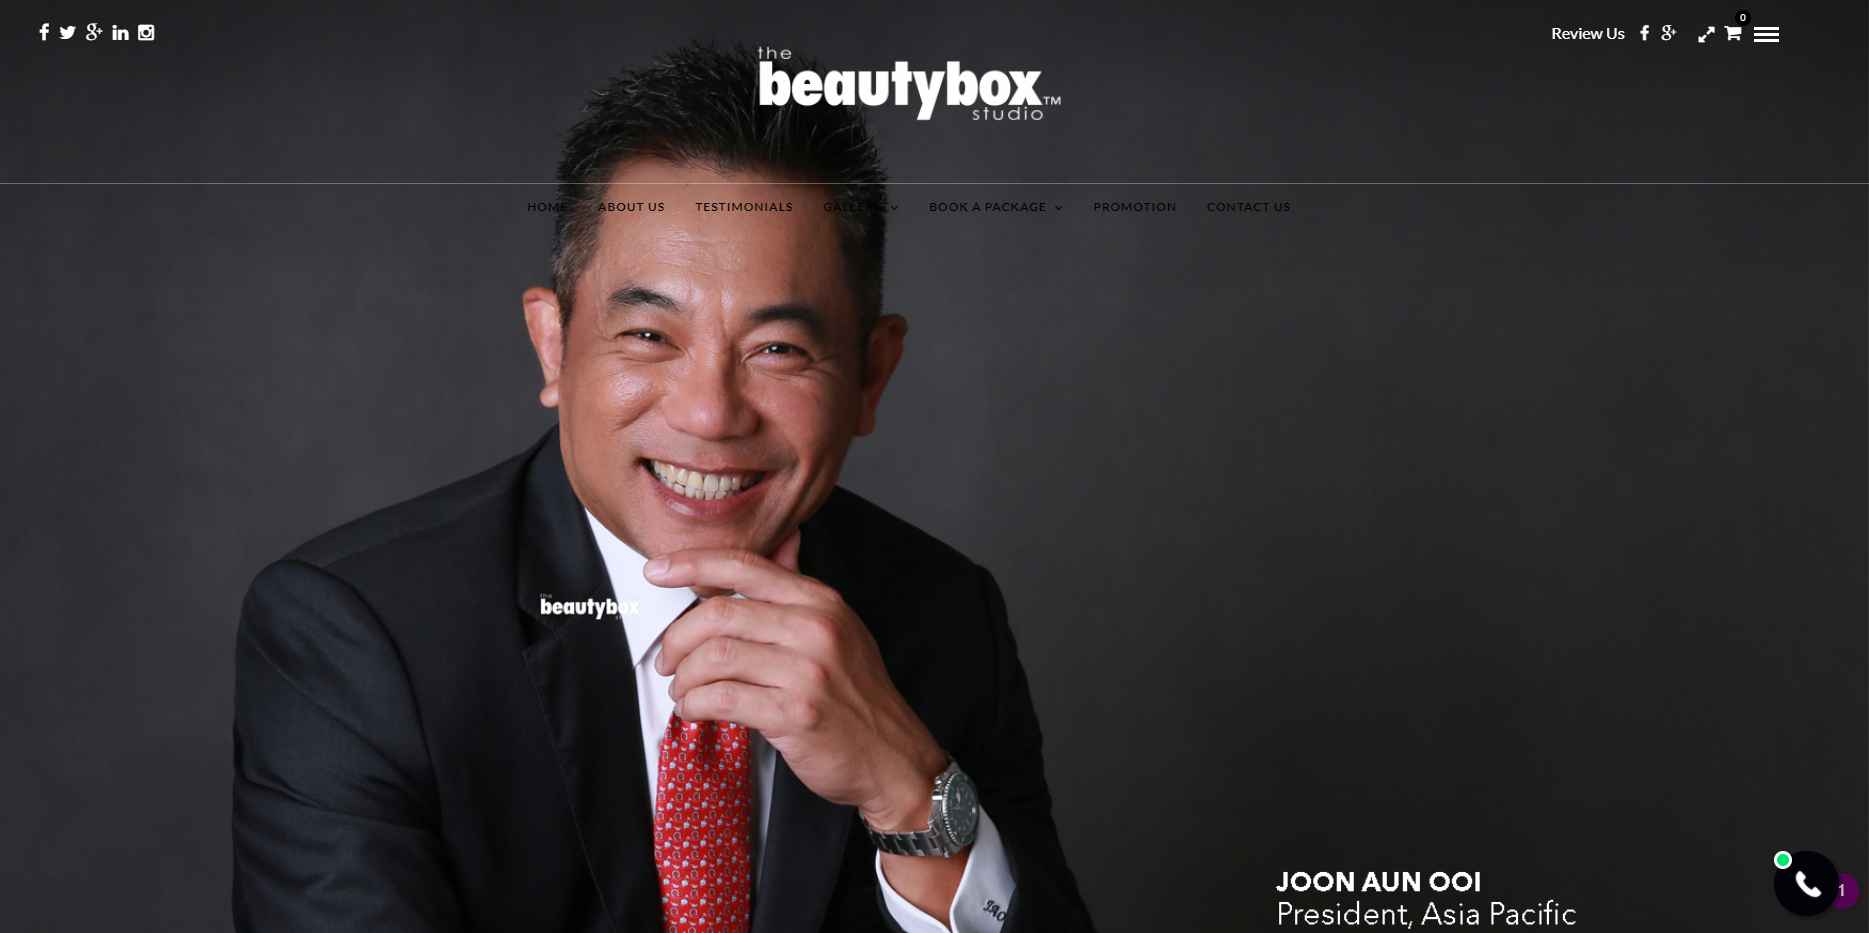 The beautybox Top Portrait Photography Studios in Singapore